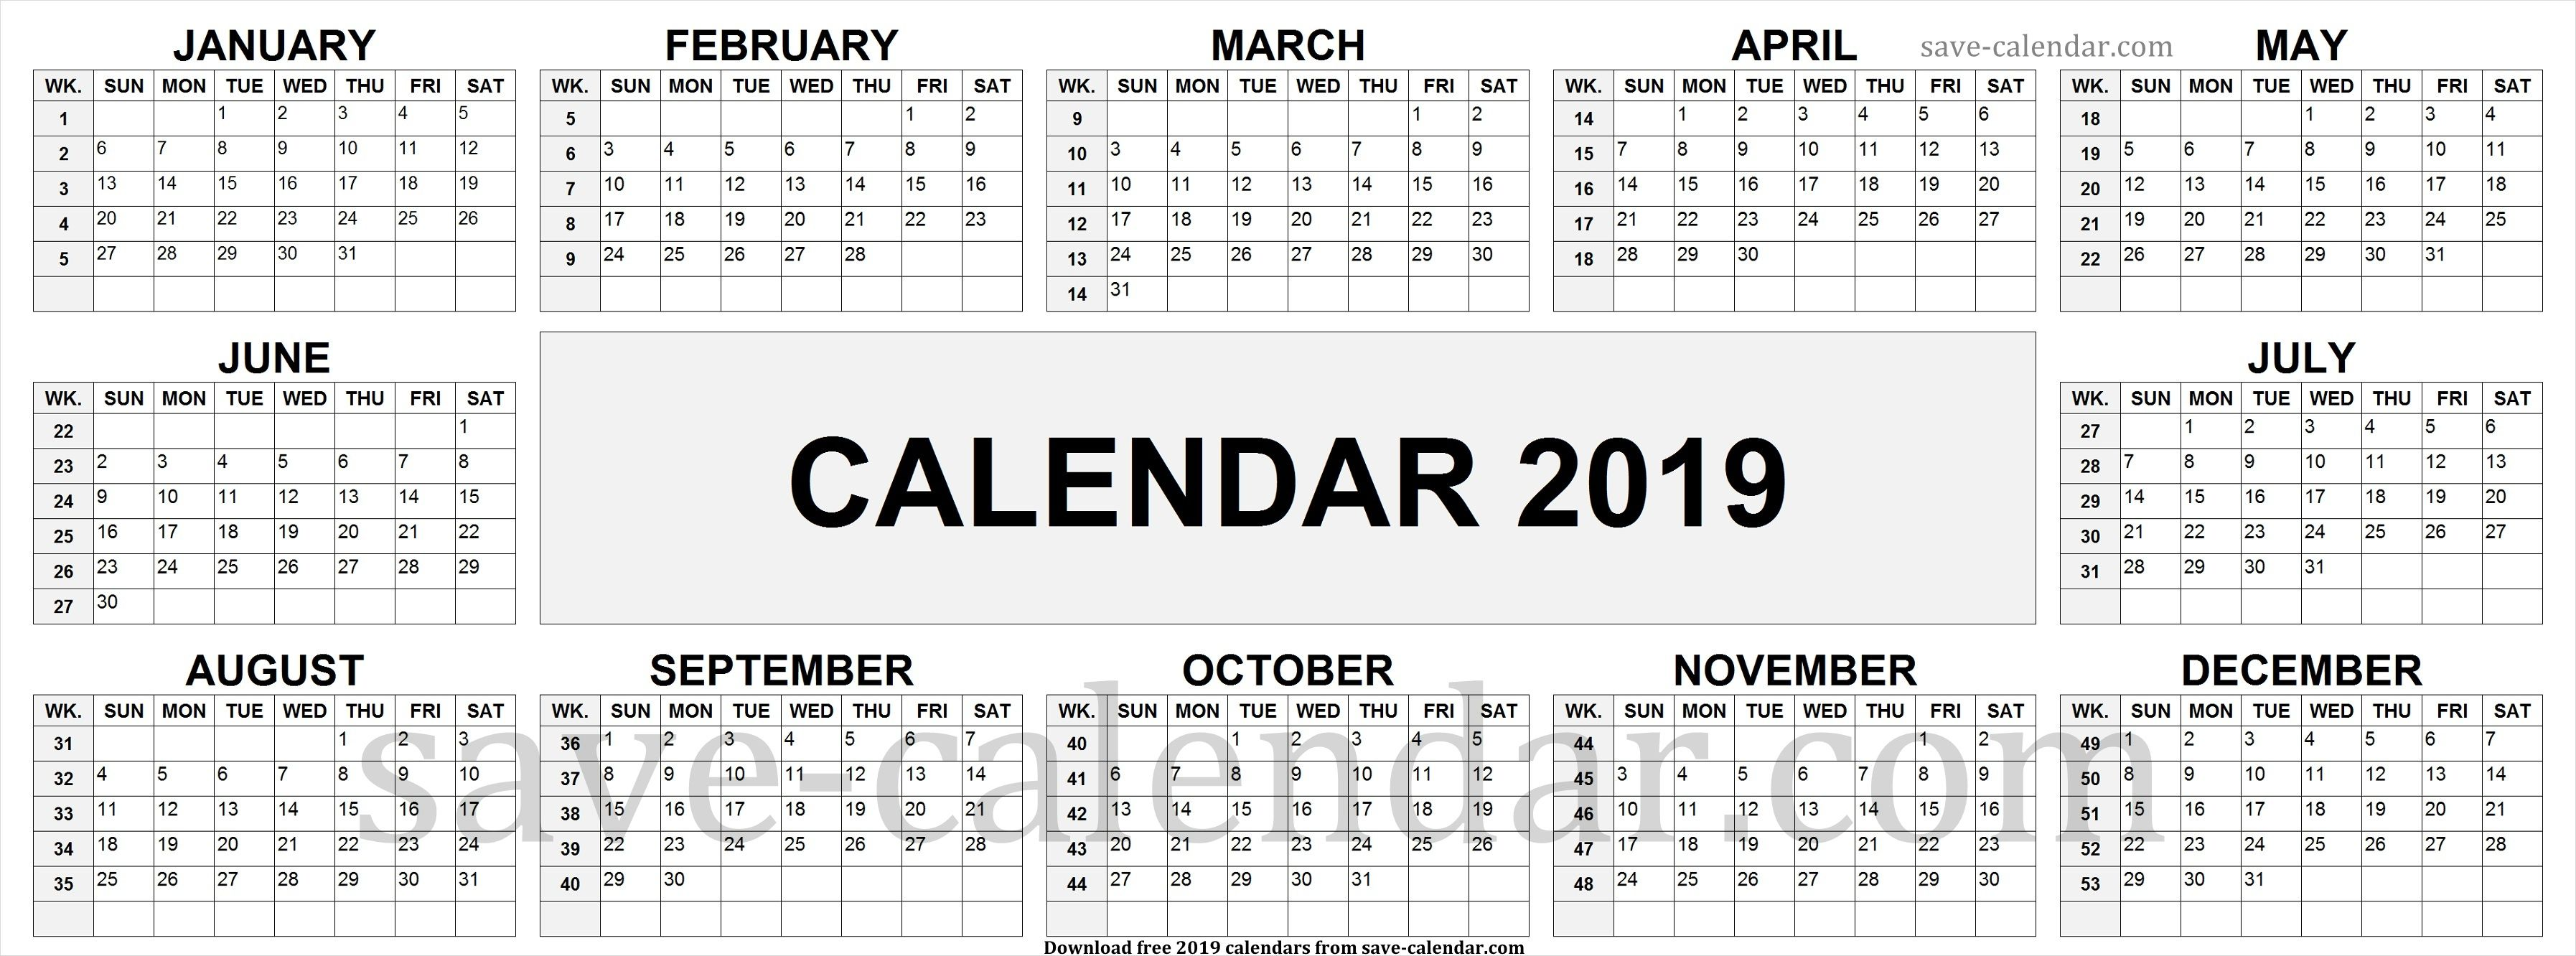 Calendar 2019 With Week Numbers 2019 Calendar By Week Numbers | Calendar 2019 with Week Numbers